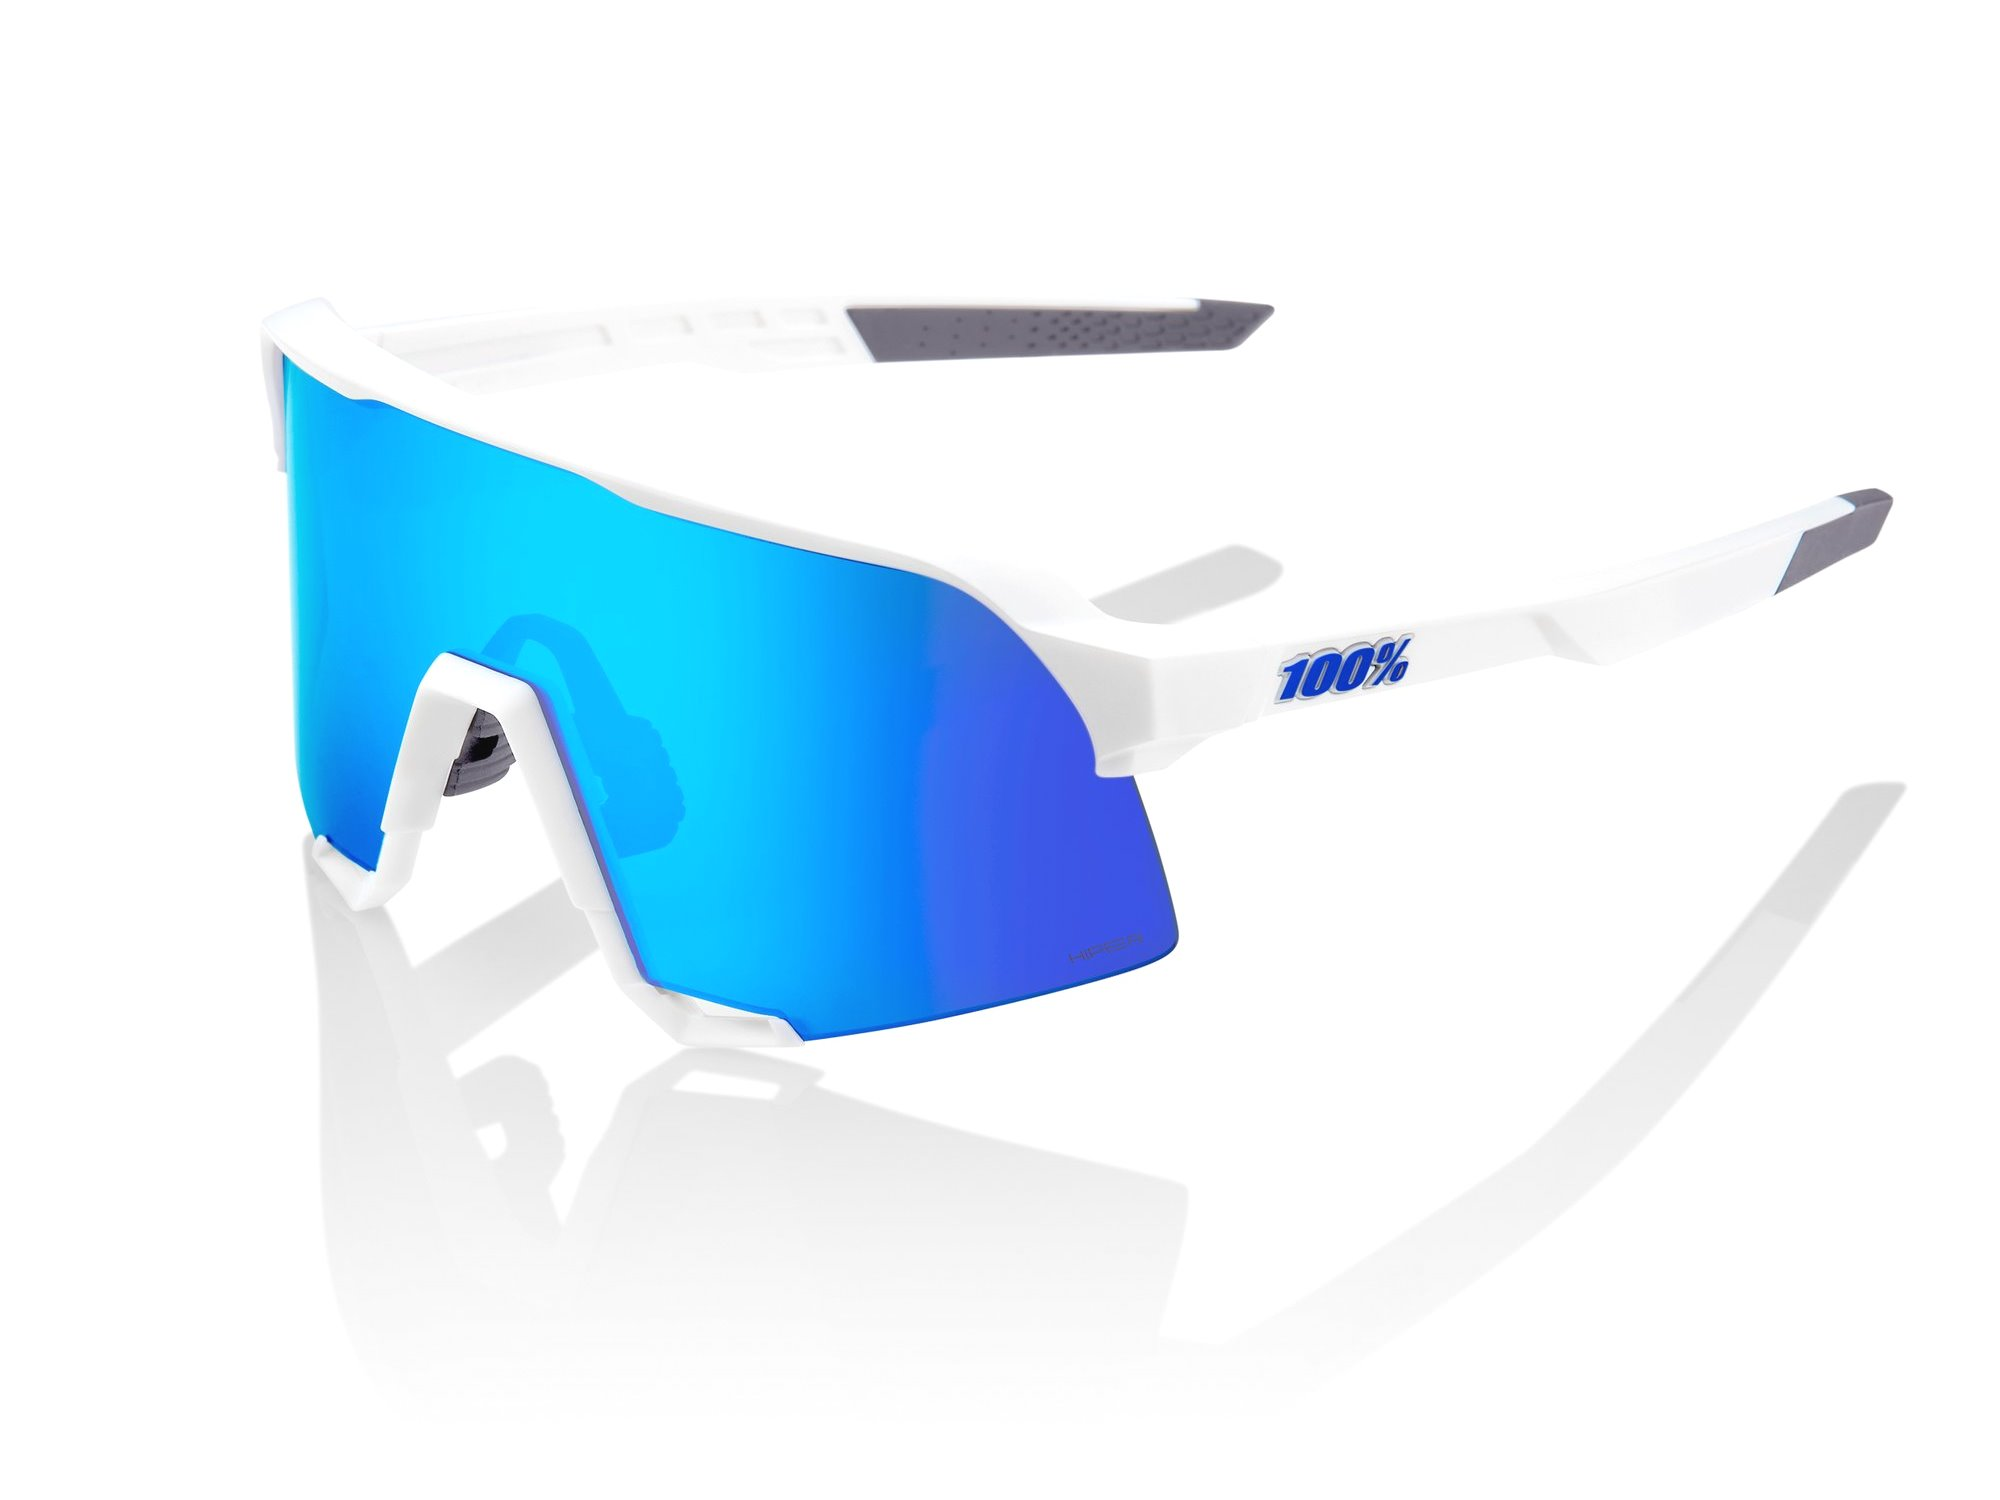 100% S3 Solbriller, Soft Tact White | cykelbrille